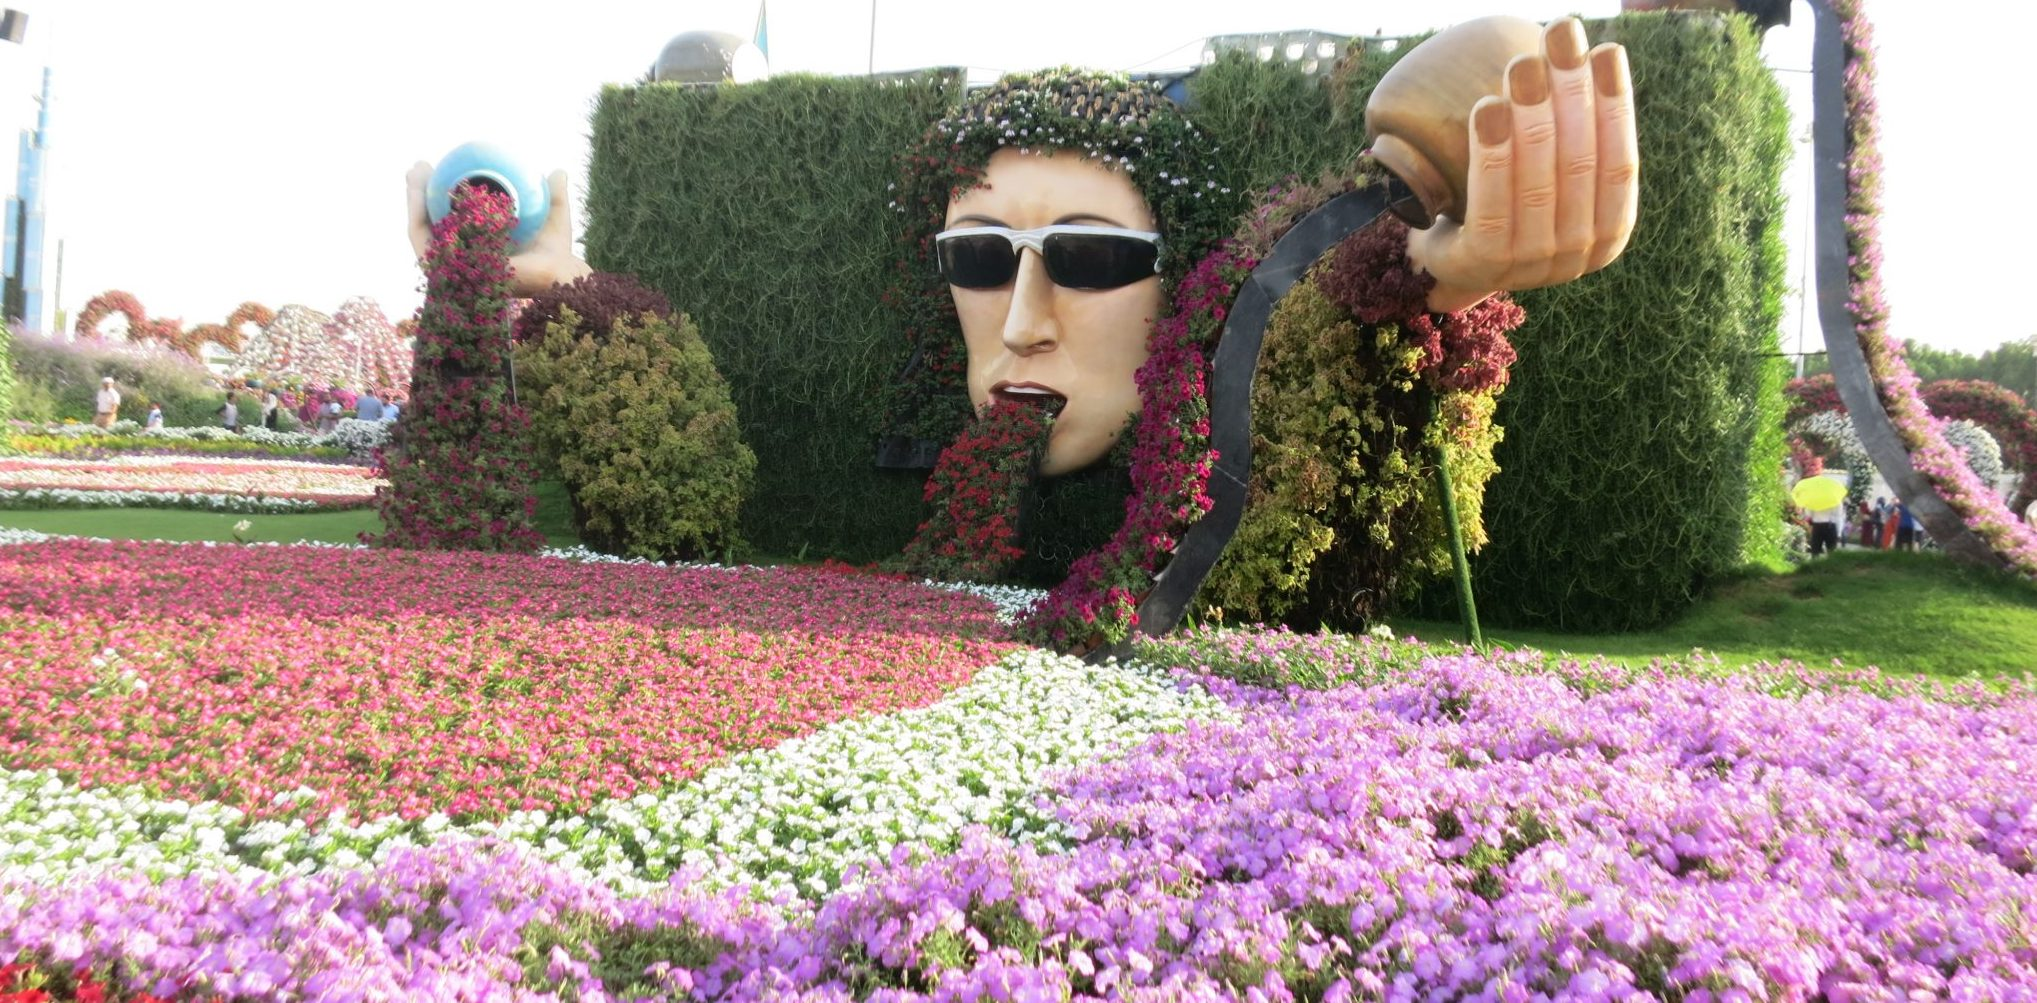 Floral display that looks like John Lennon throwing up at Dubai Miracle Garden.